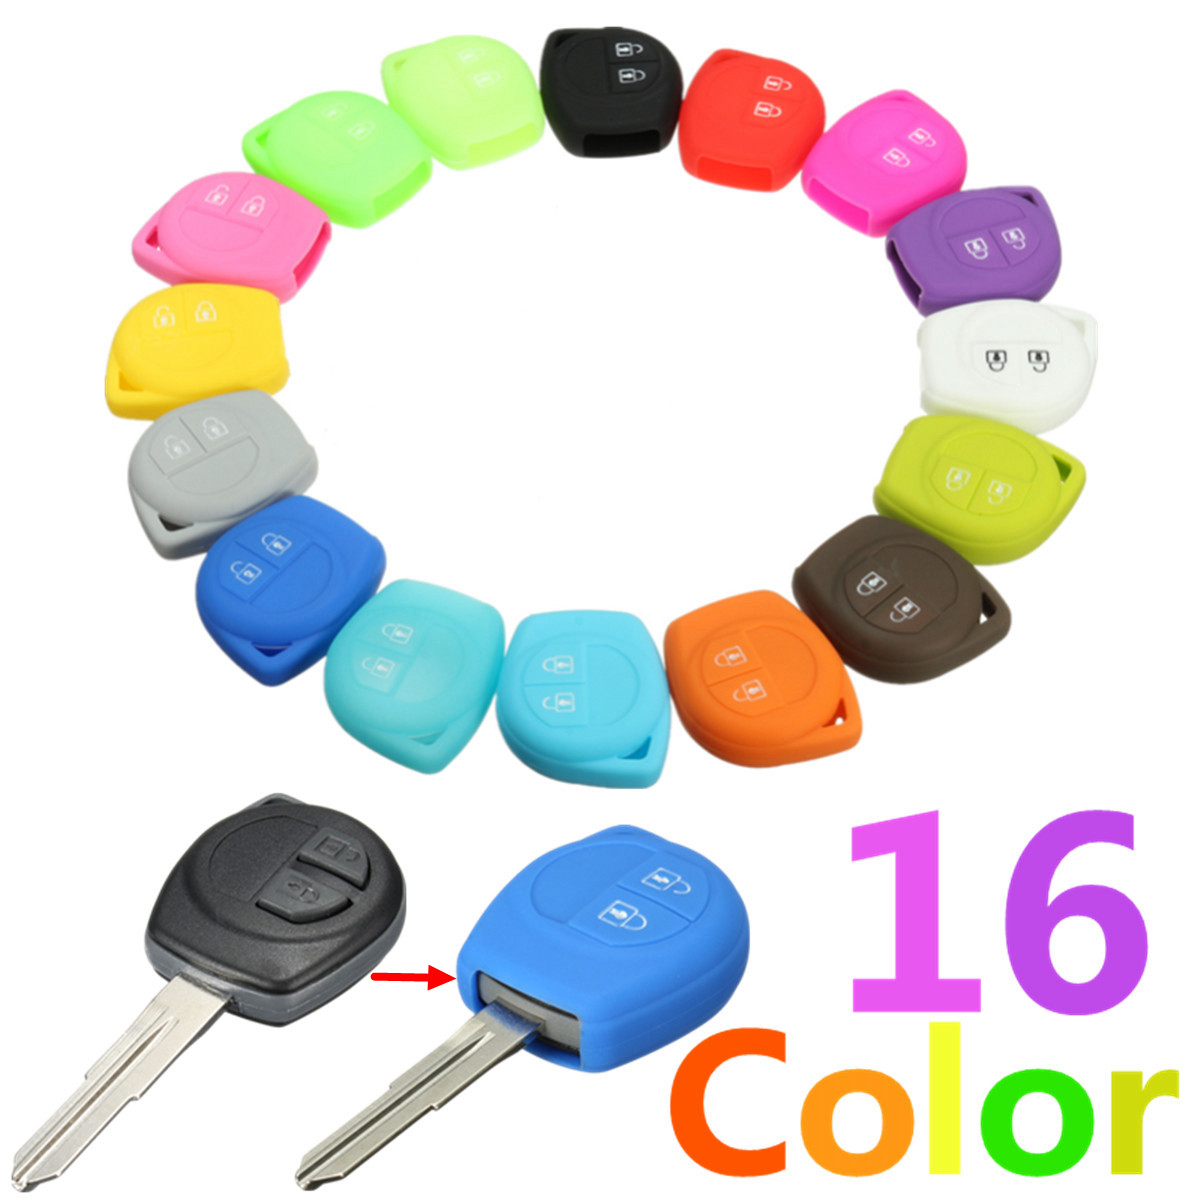 16 Color Silicone 2 Button Remote Key Case Fob Protect Cover For Suzuki /SX4 /Swift /Vitara-in Key Case for Car from Automobiles & Motorcycles